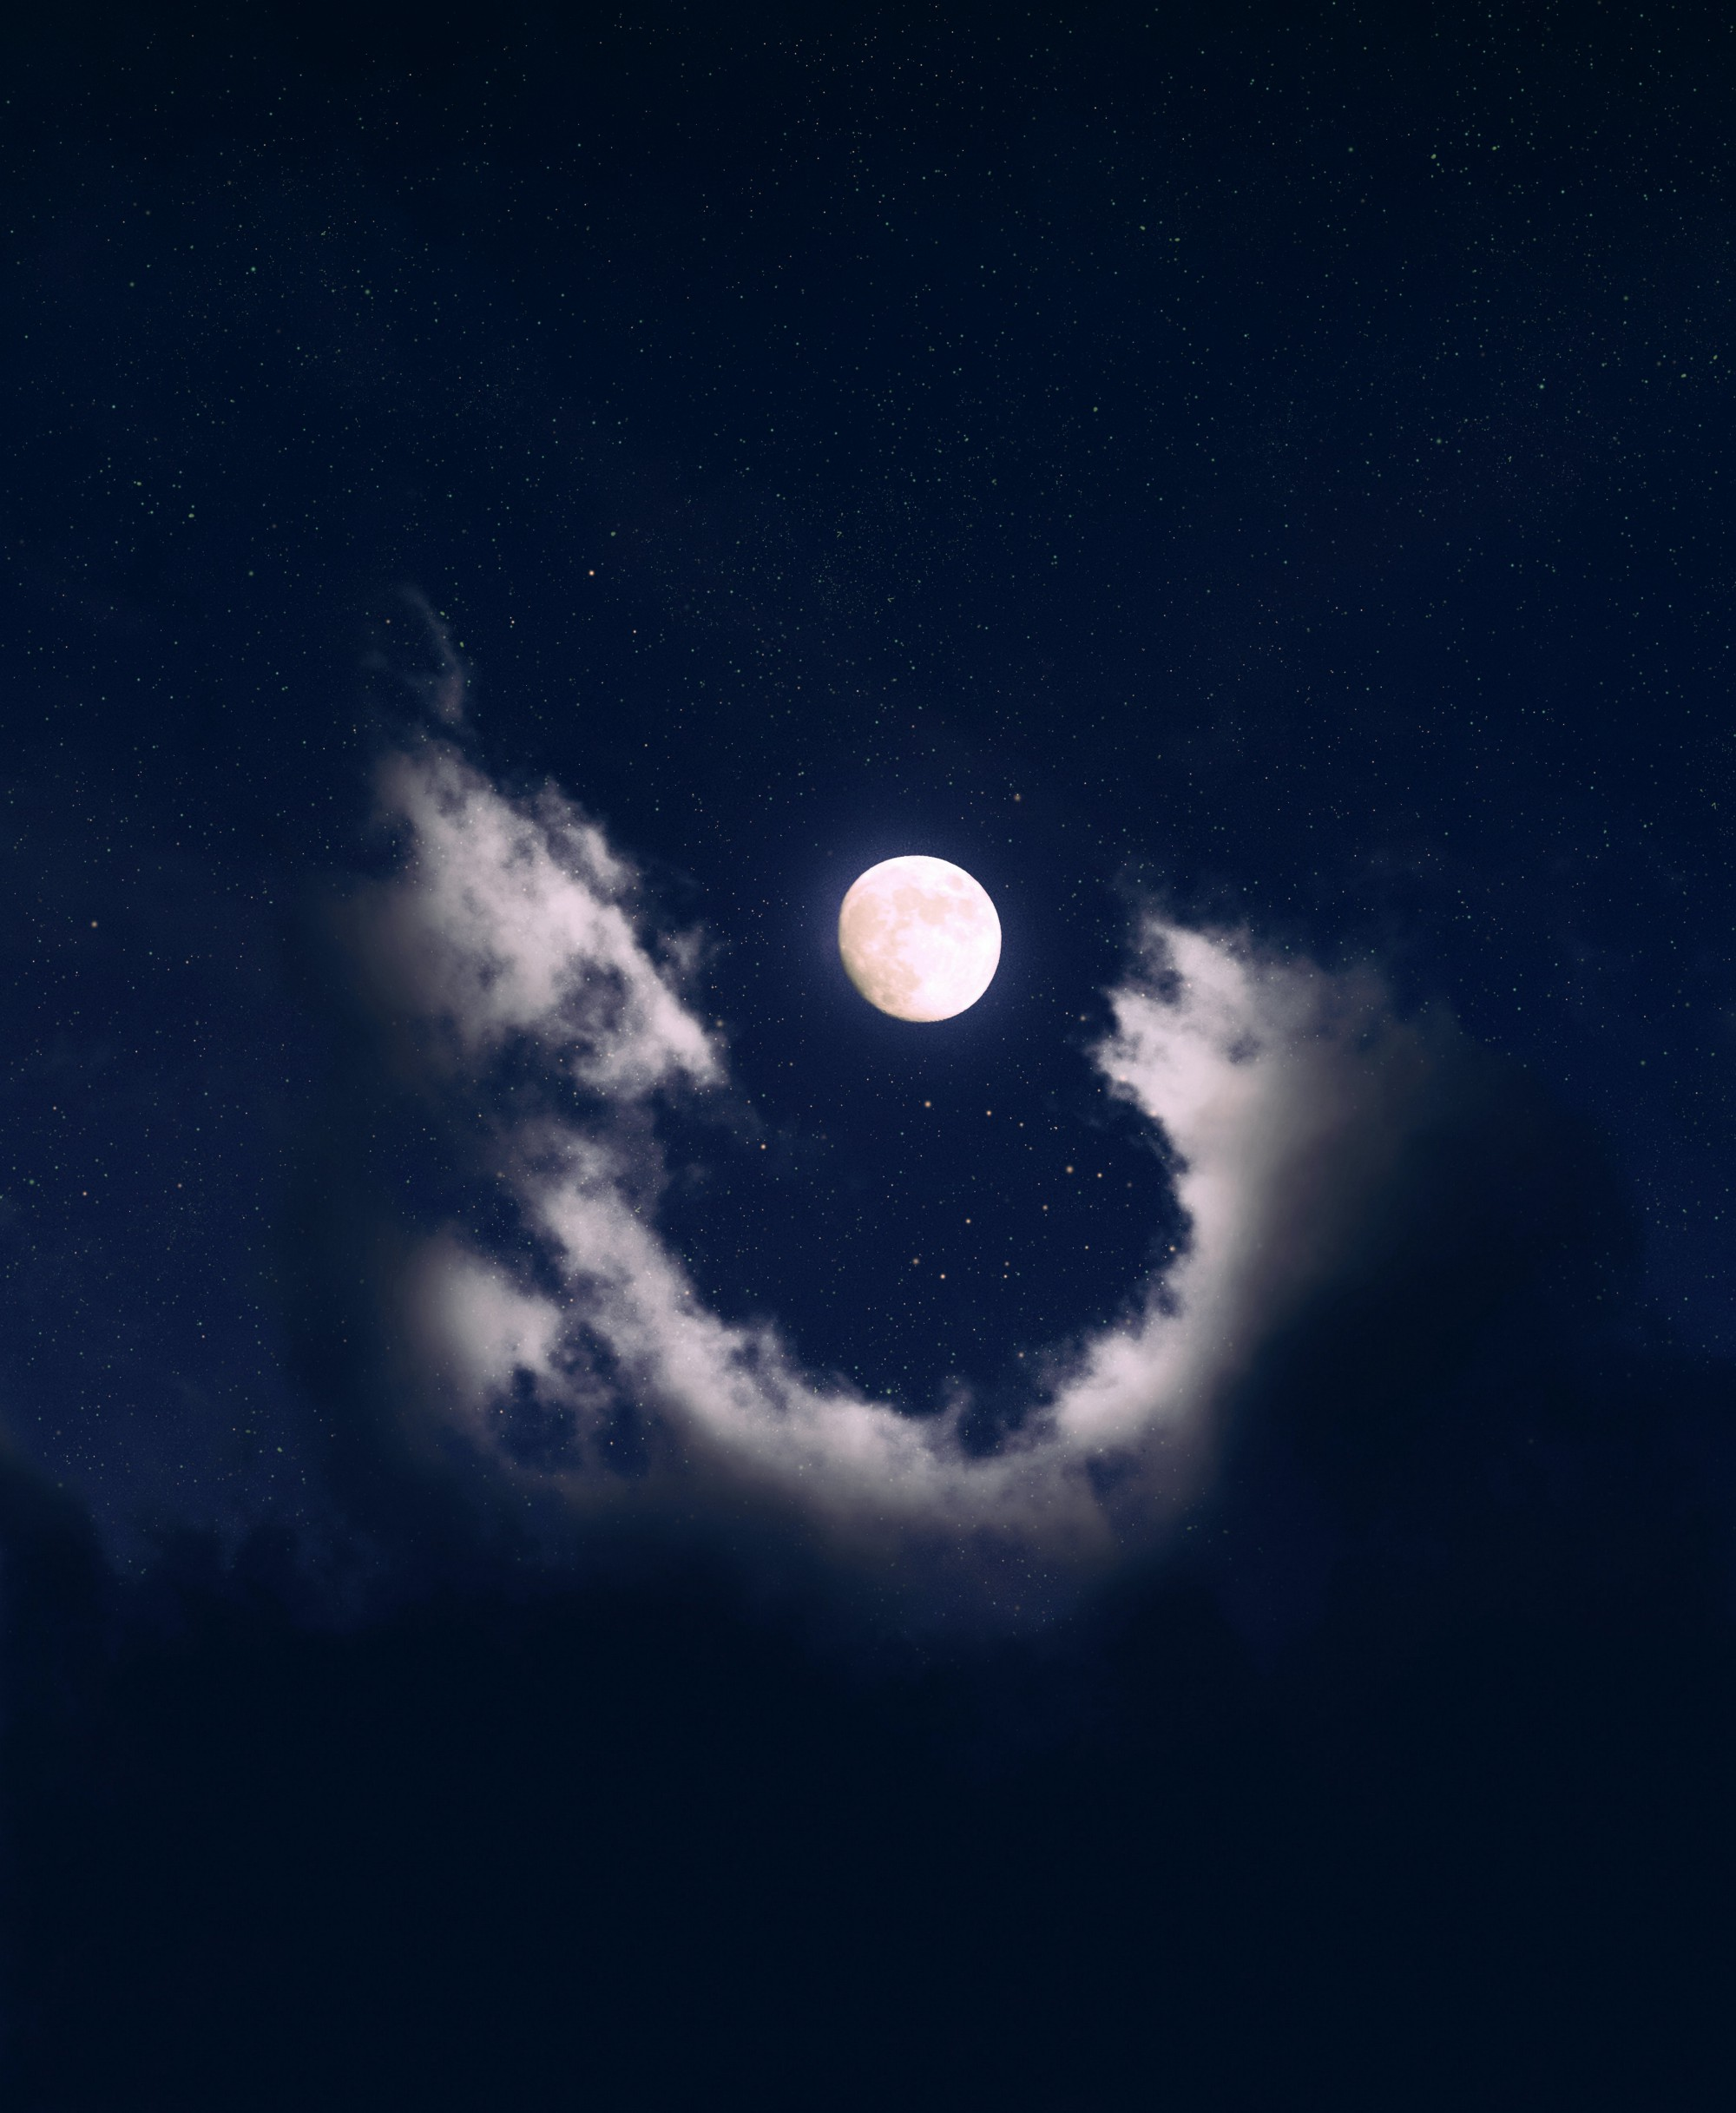 A nearly full moon glows lavender in the middle of a cloud that makes a U-shape underneath it.